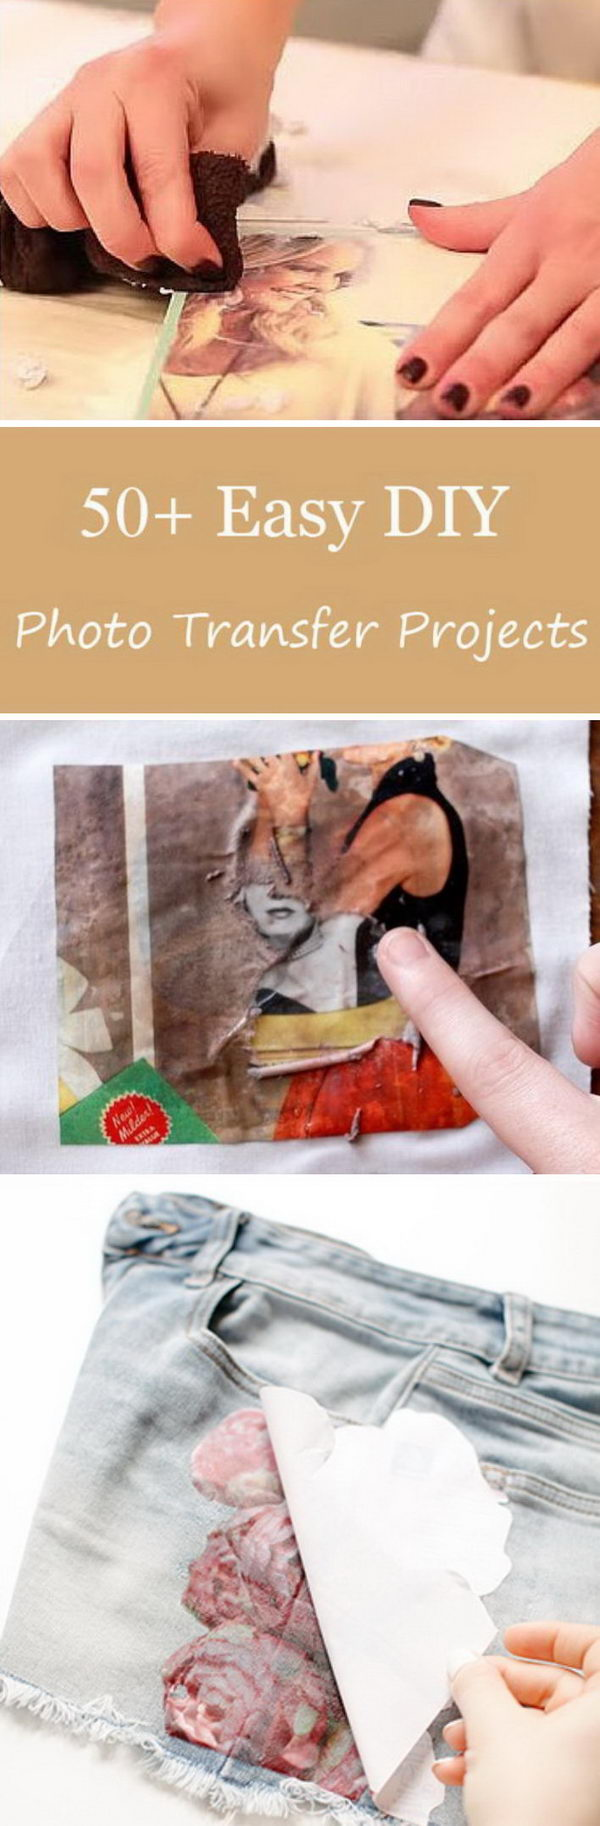 Easy DIY Ideas and Tutorials to Tranfser Photos.